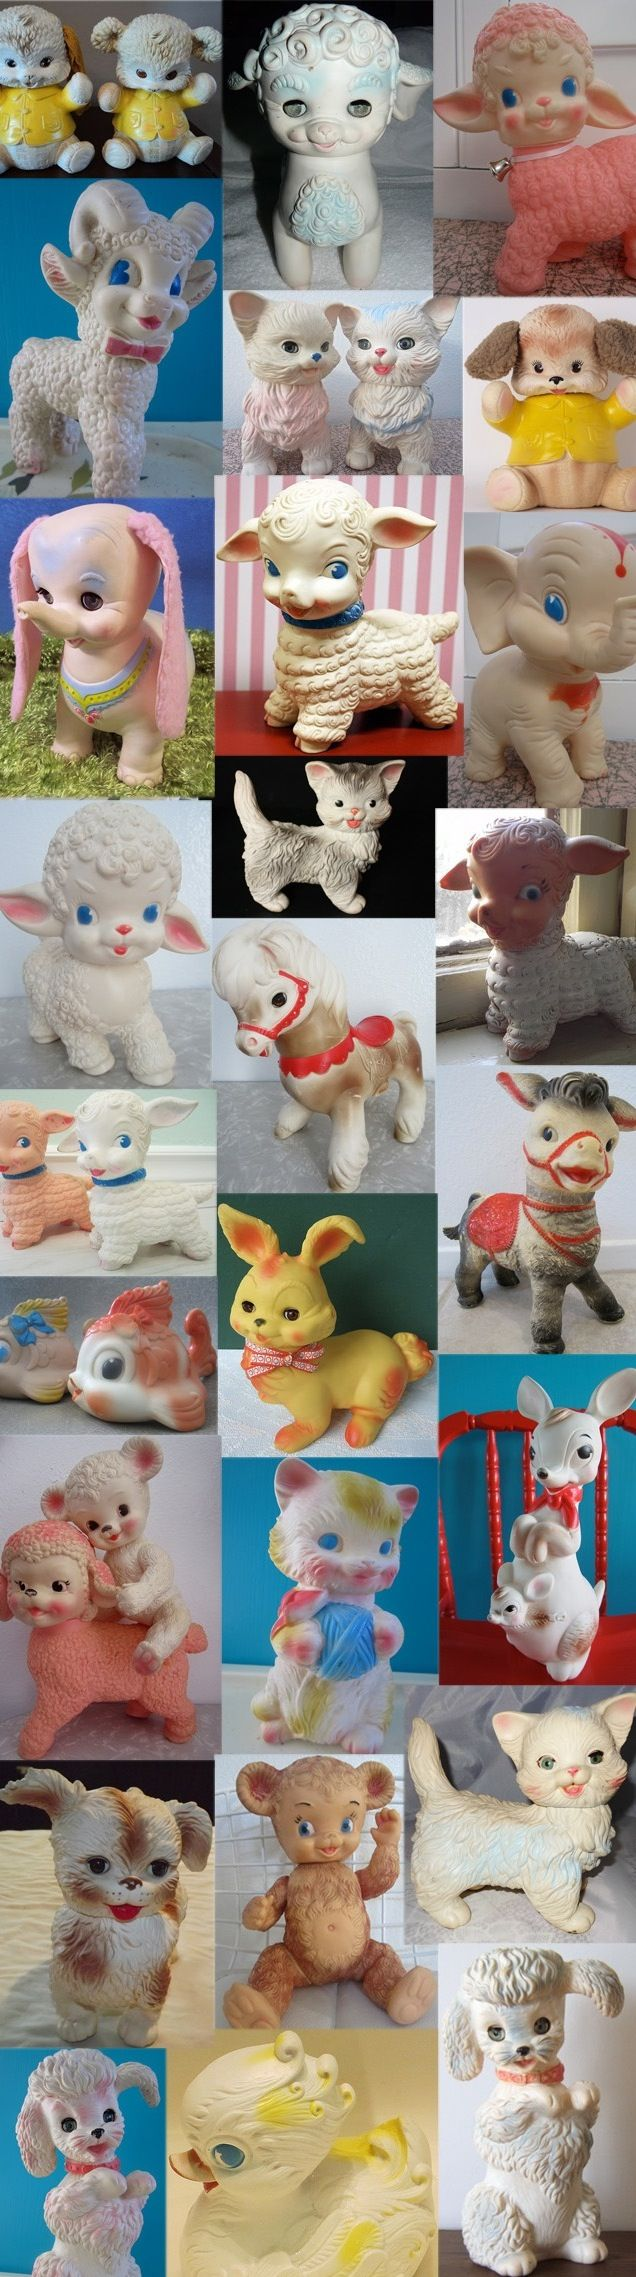 Vintage squeak toys. I still have my little lamb